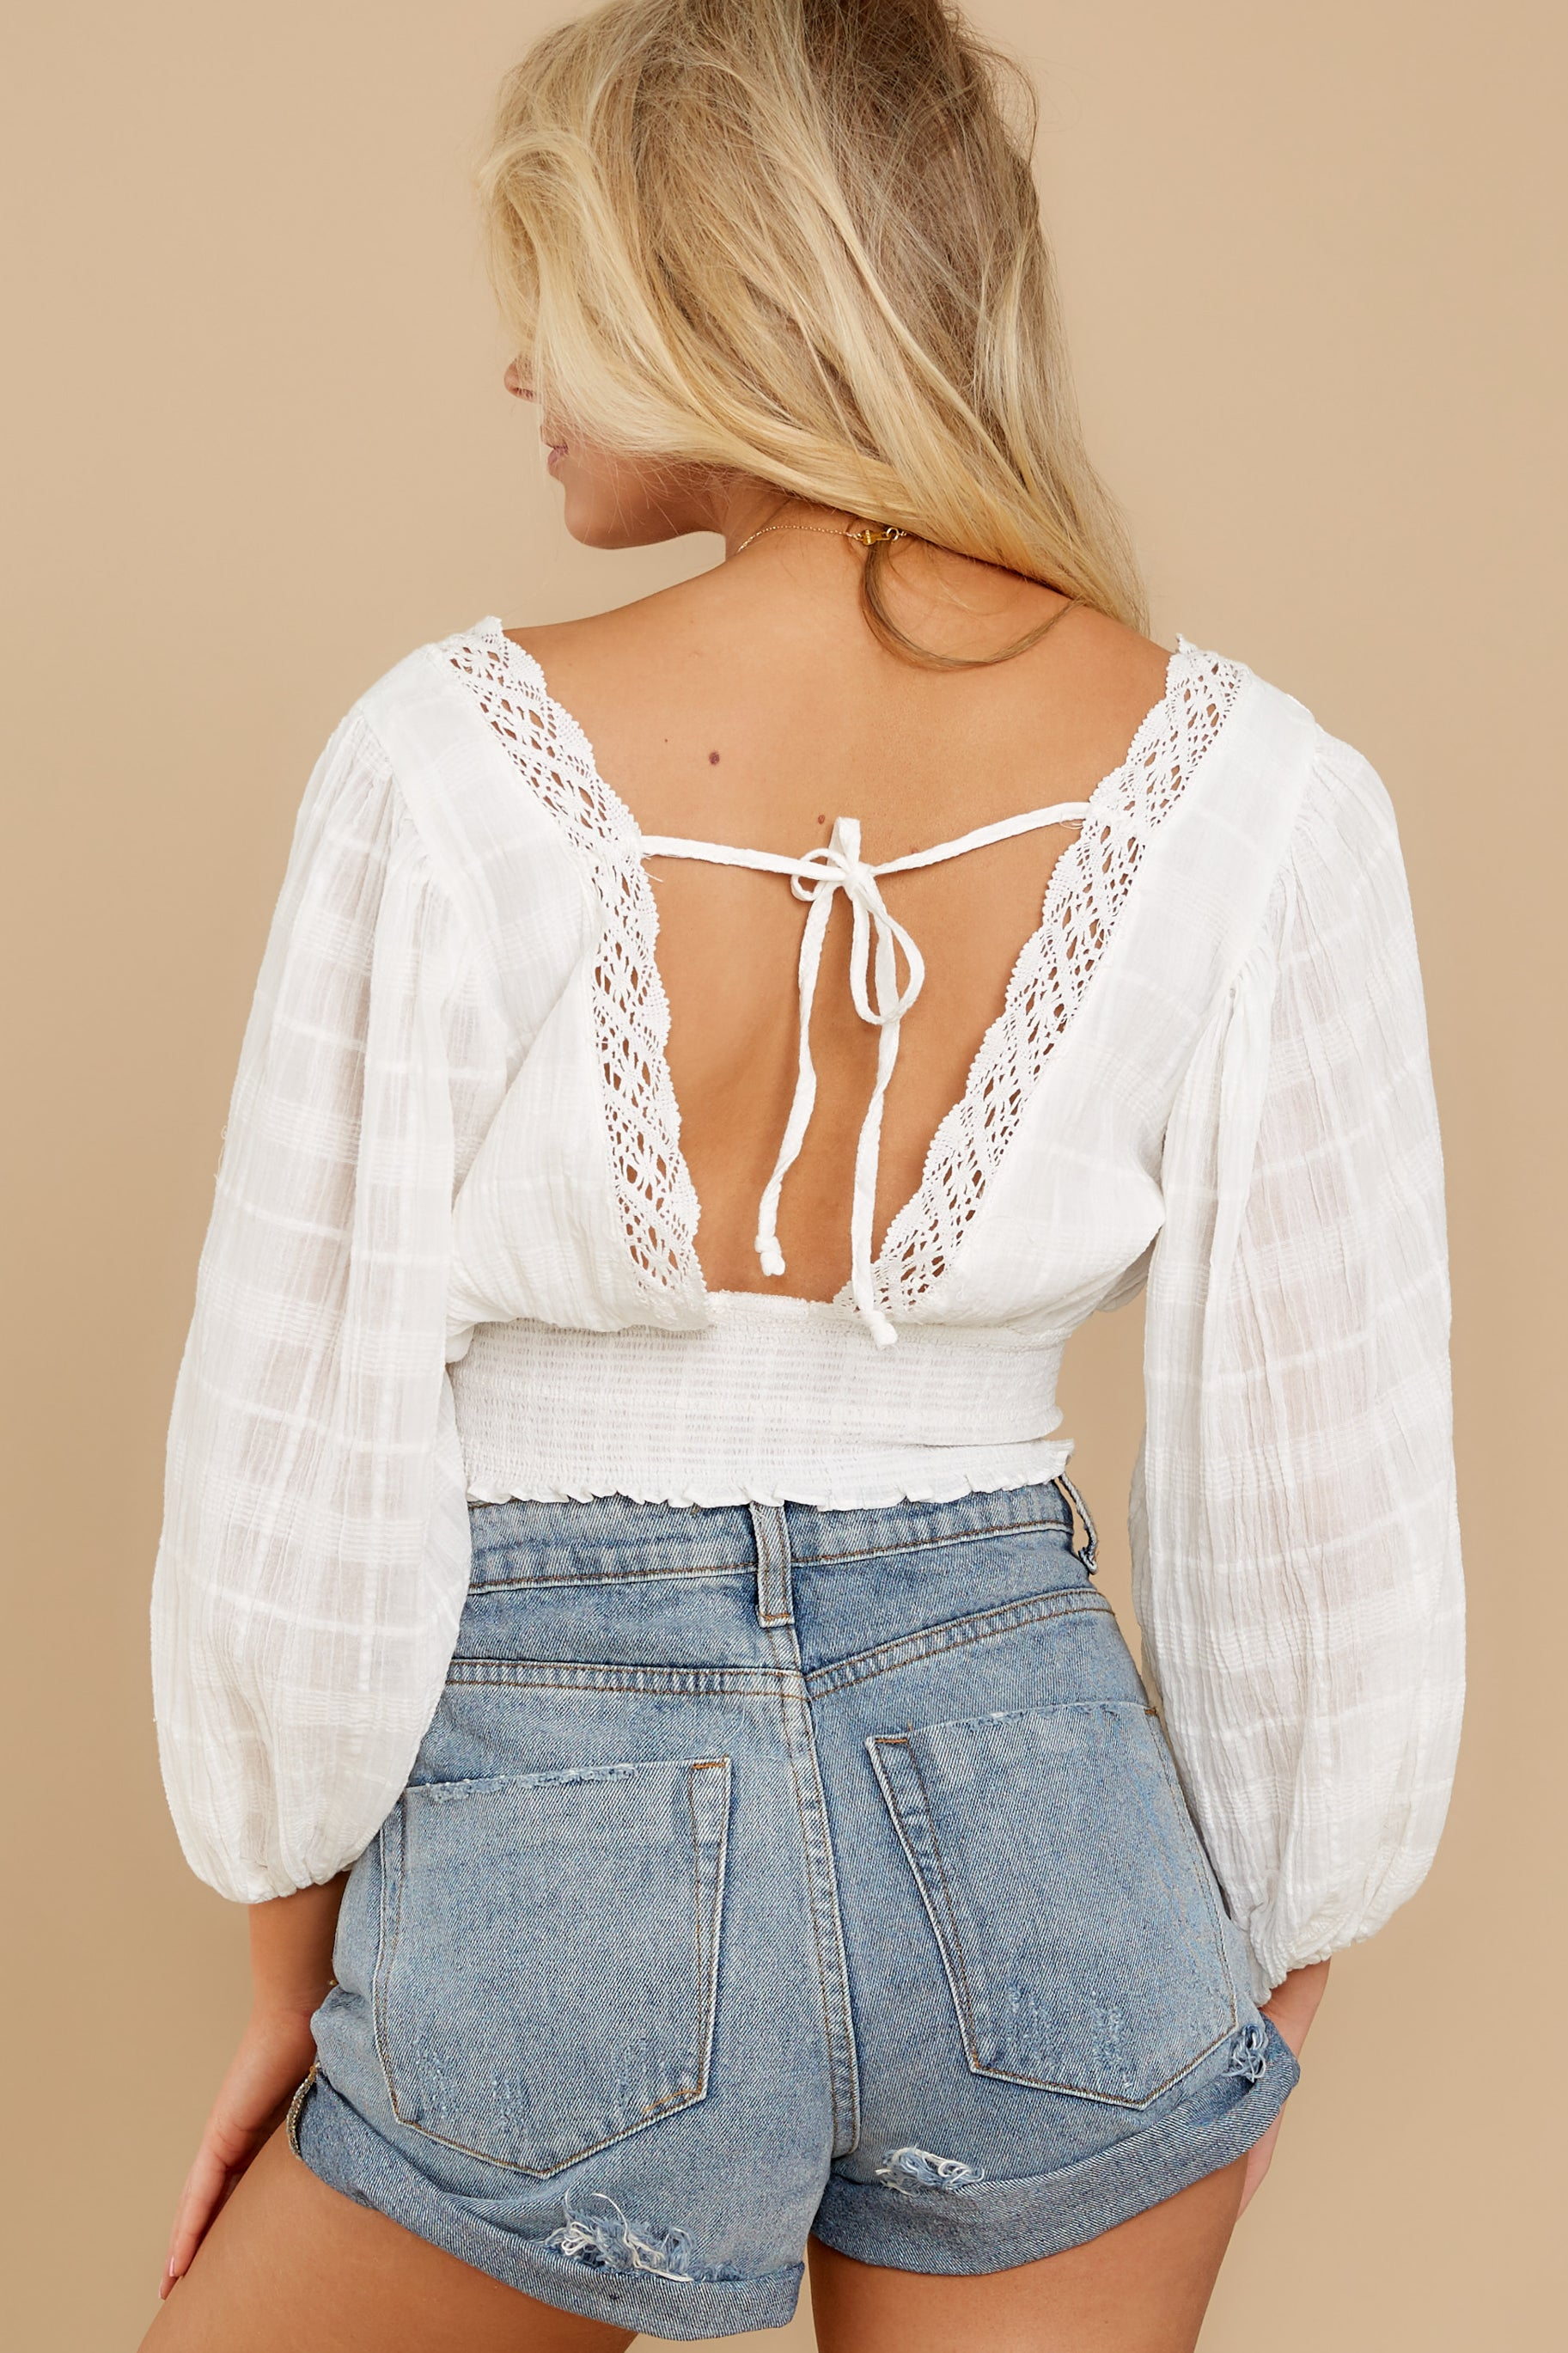 8 A Good Time White Lace Crop Top at reddress.com